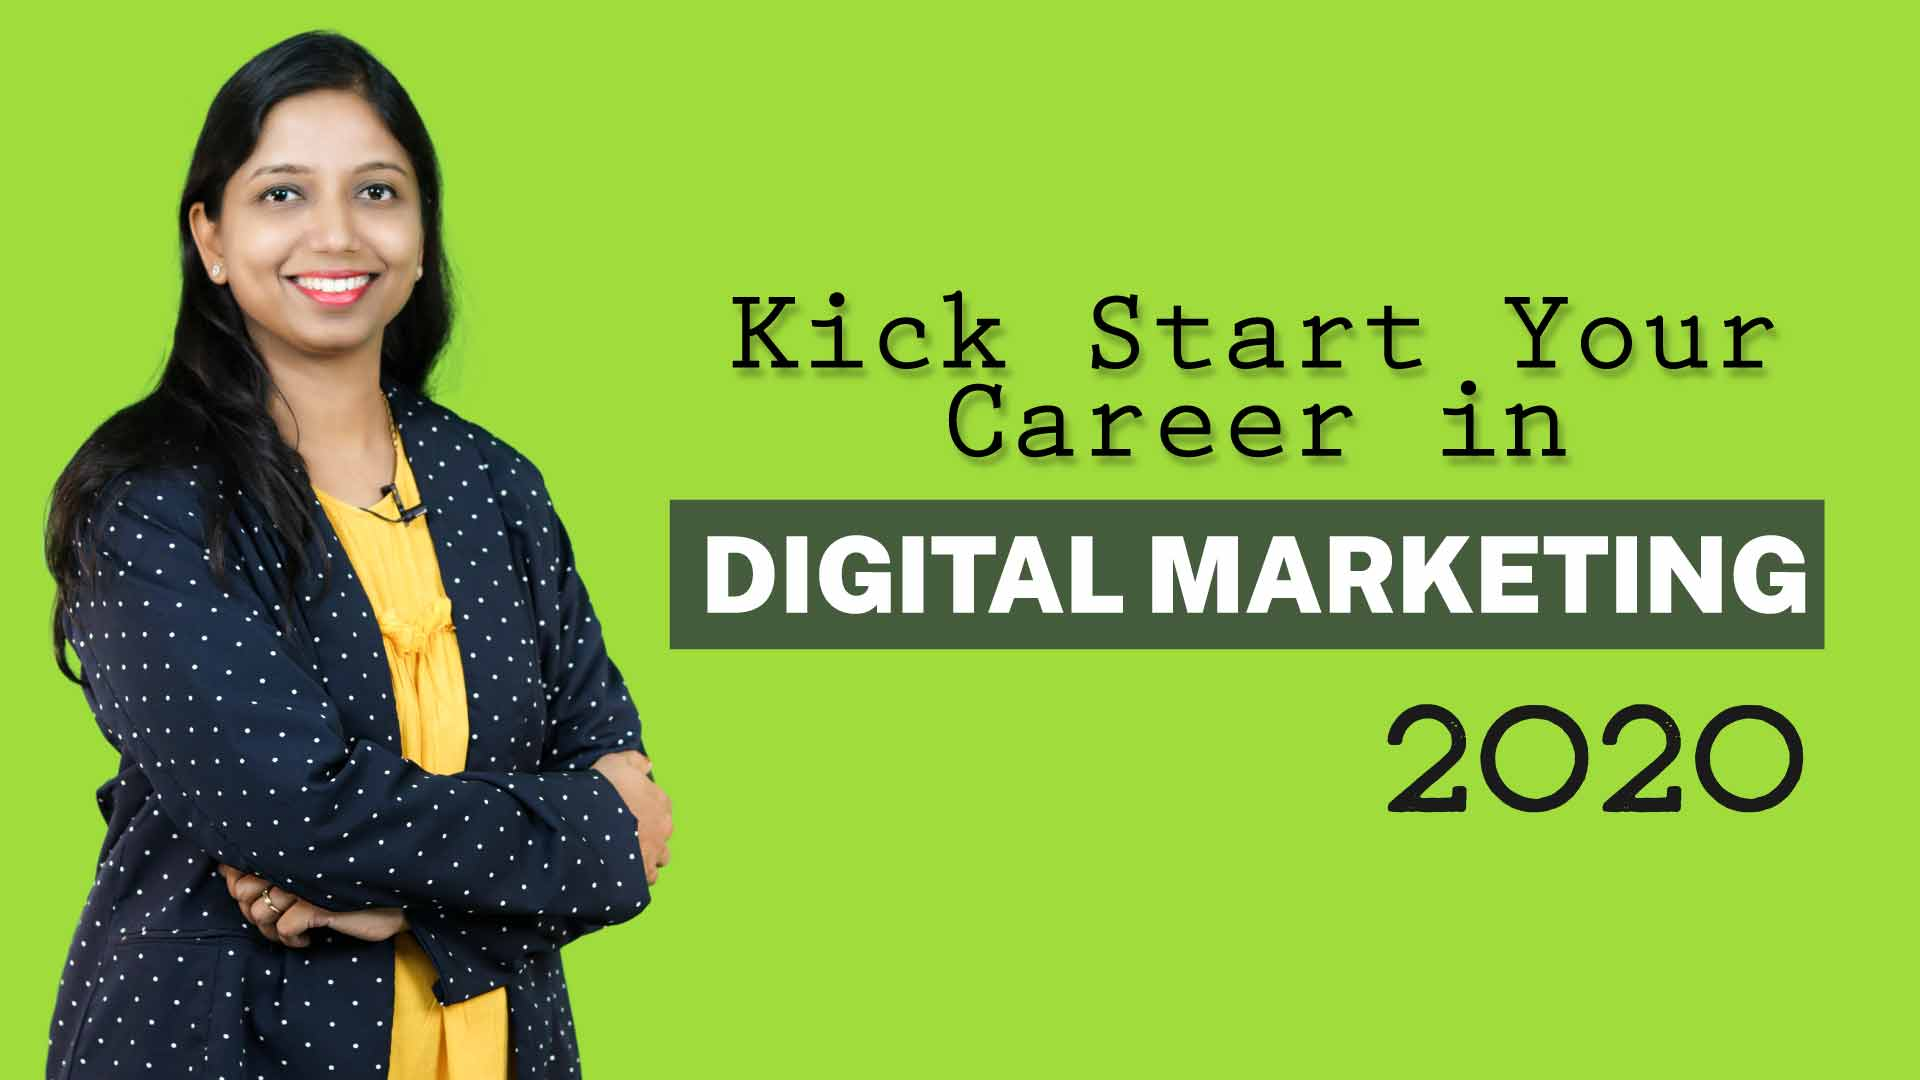 Kick Start your Career in Digital Marketing 2020